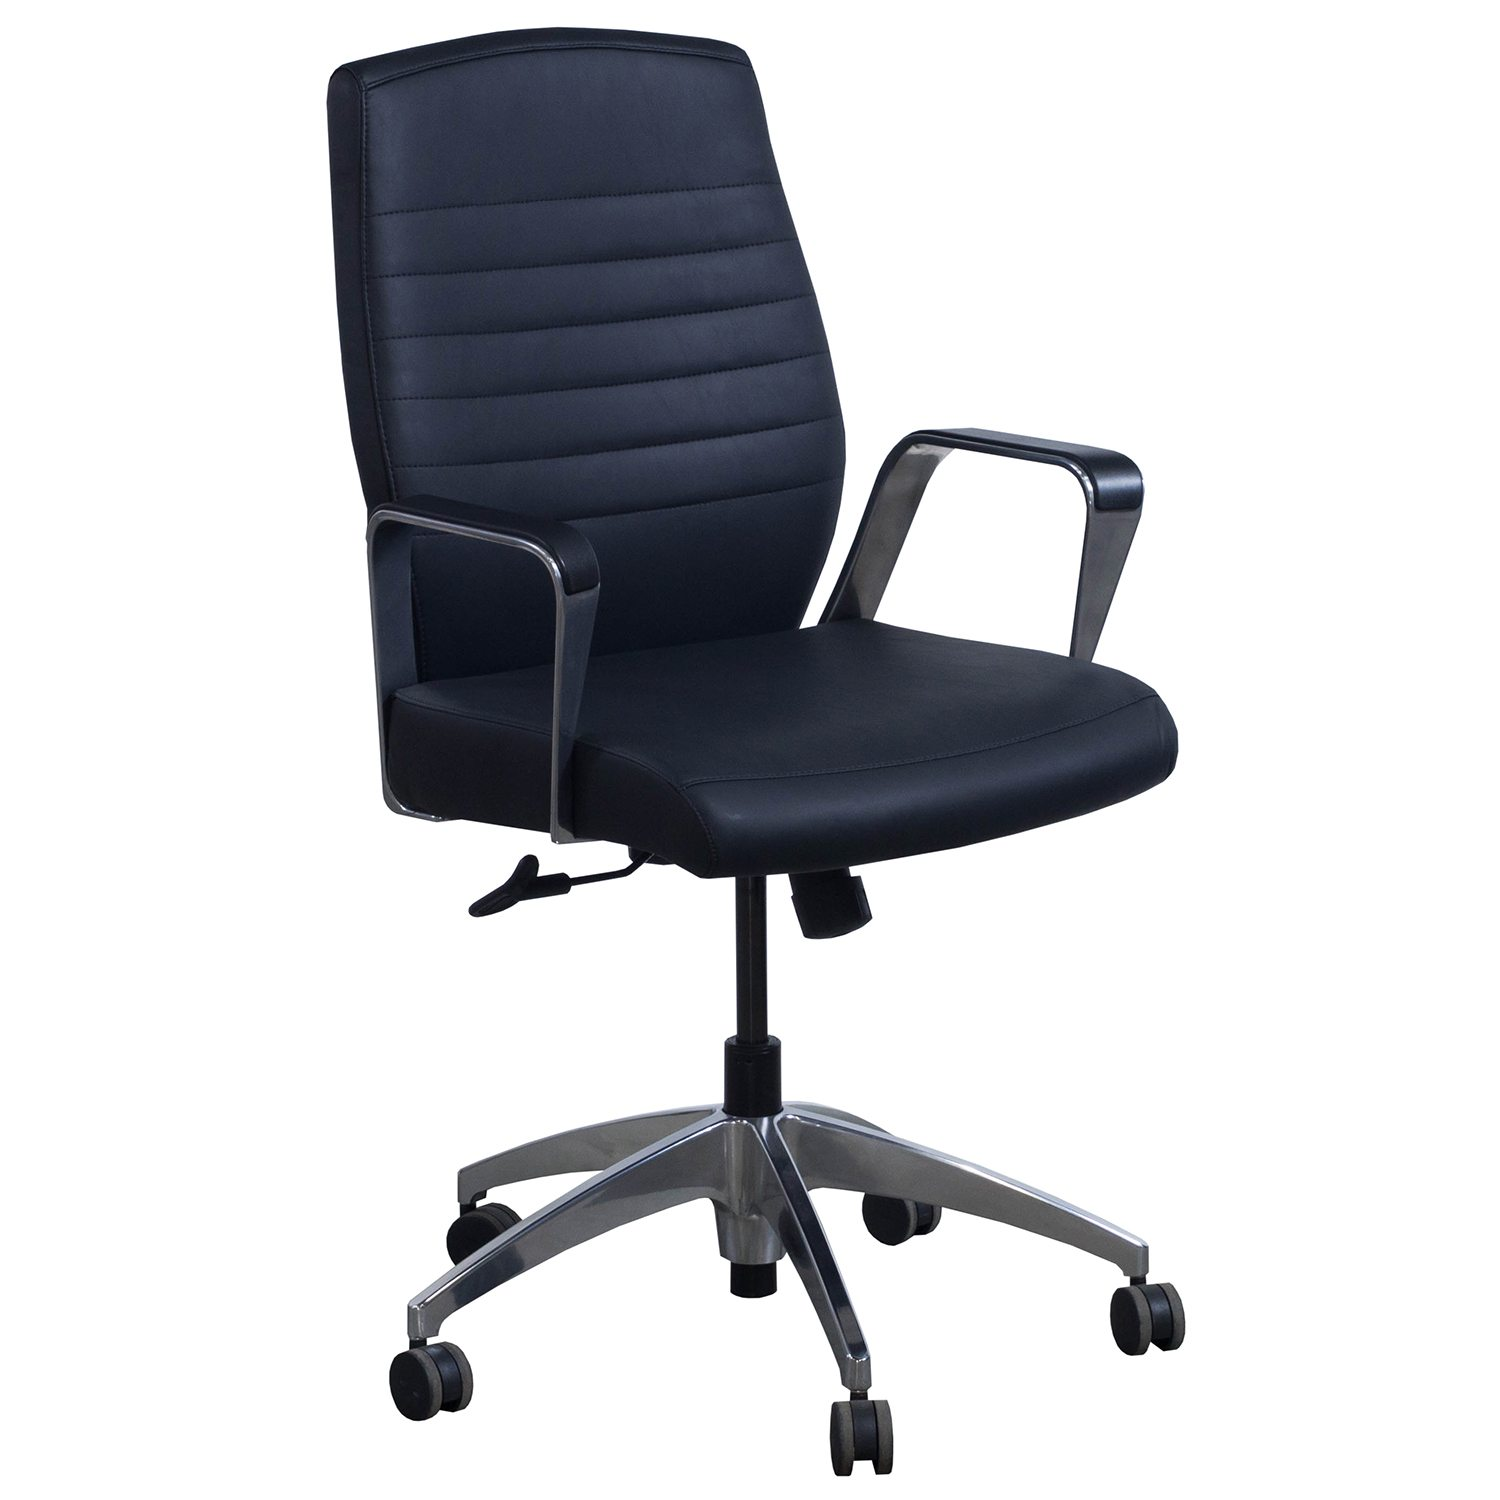 Highmark Fino Conference Chair In Black PU Leather